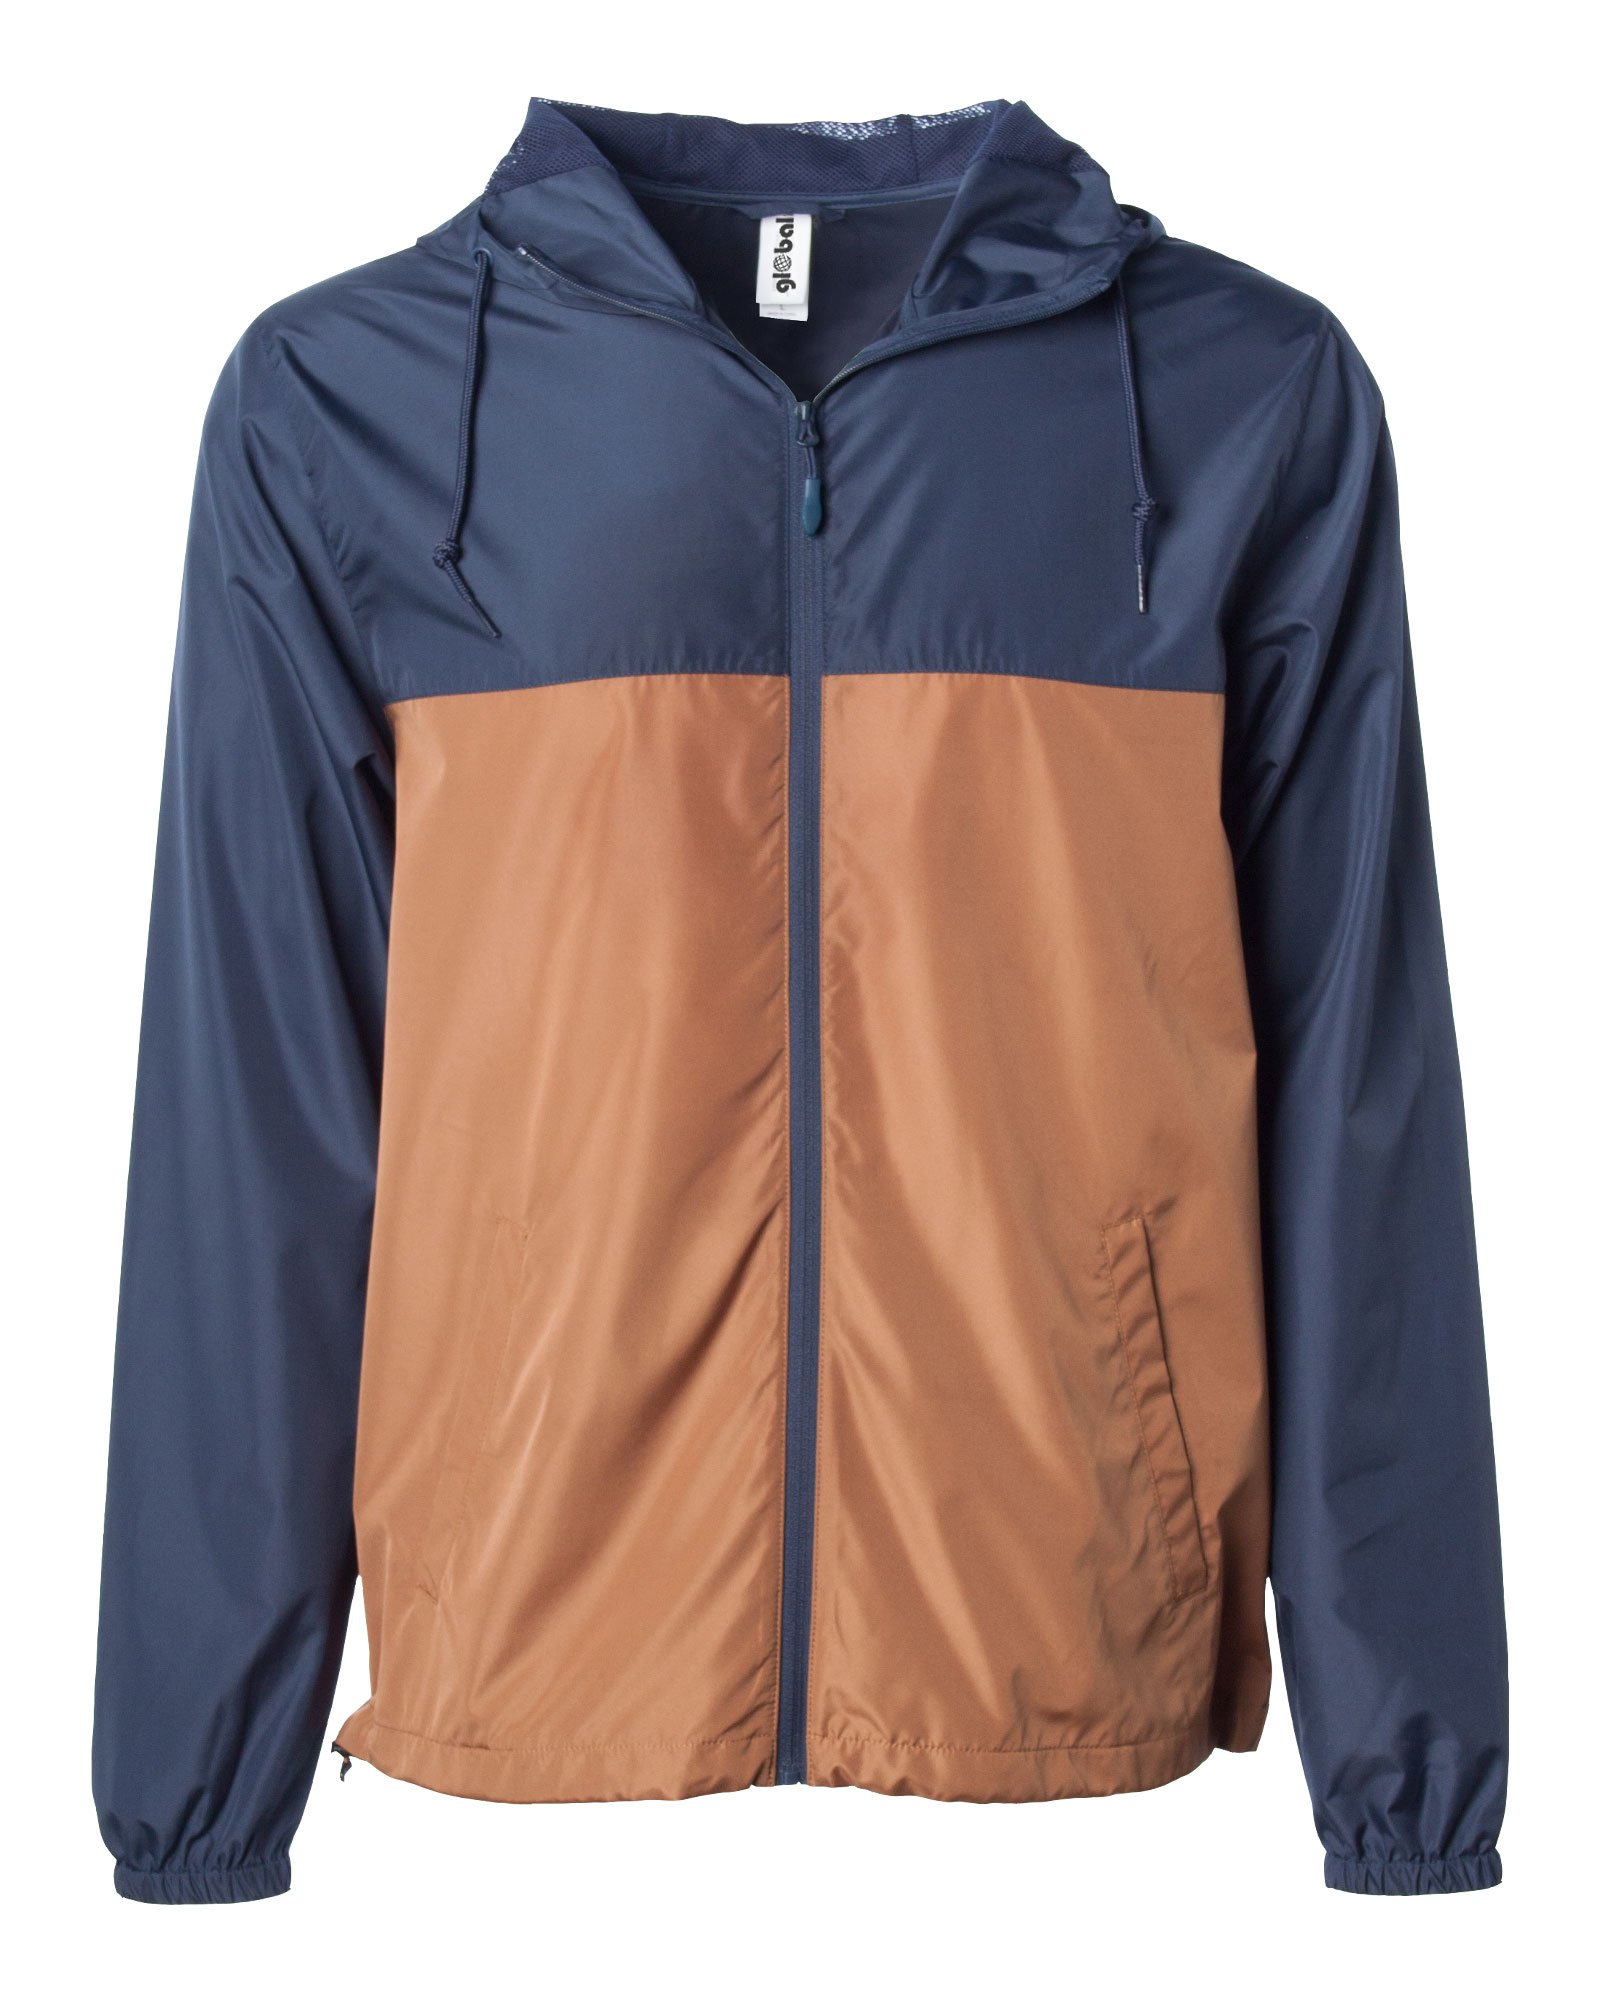 Global Men's Hooded Lightweight Windbreaker Rain Jacket Water Resistant Shell (Navy/Saddle, Large)